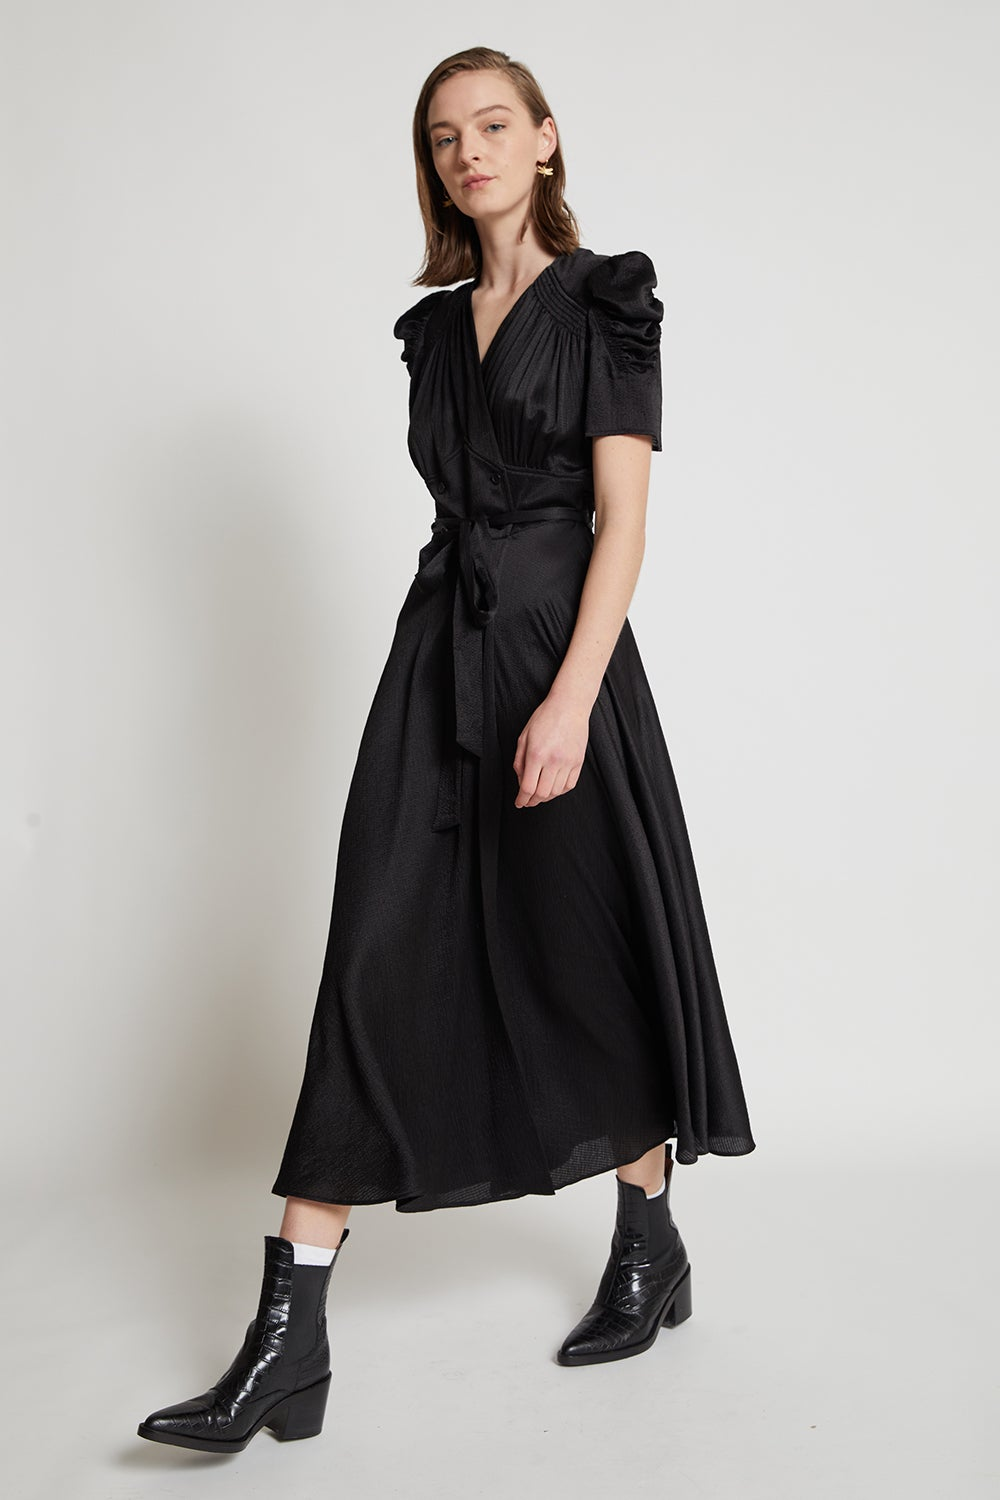 Mr. Lincoln Wrap Dress